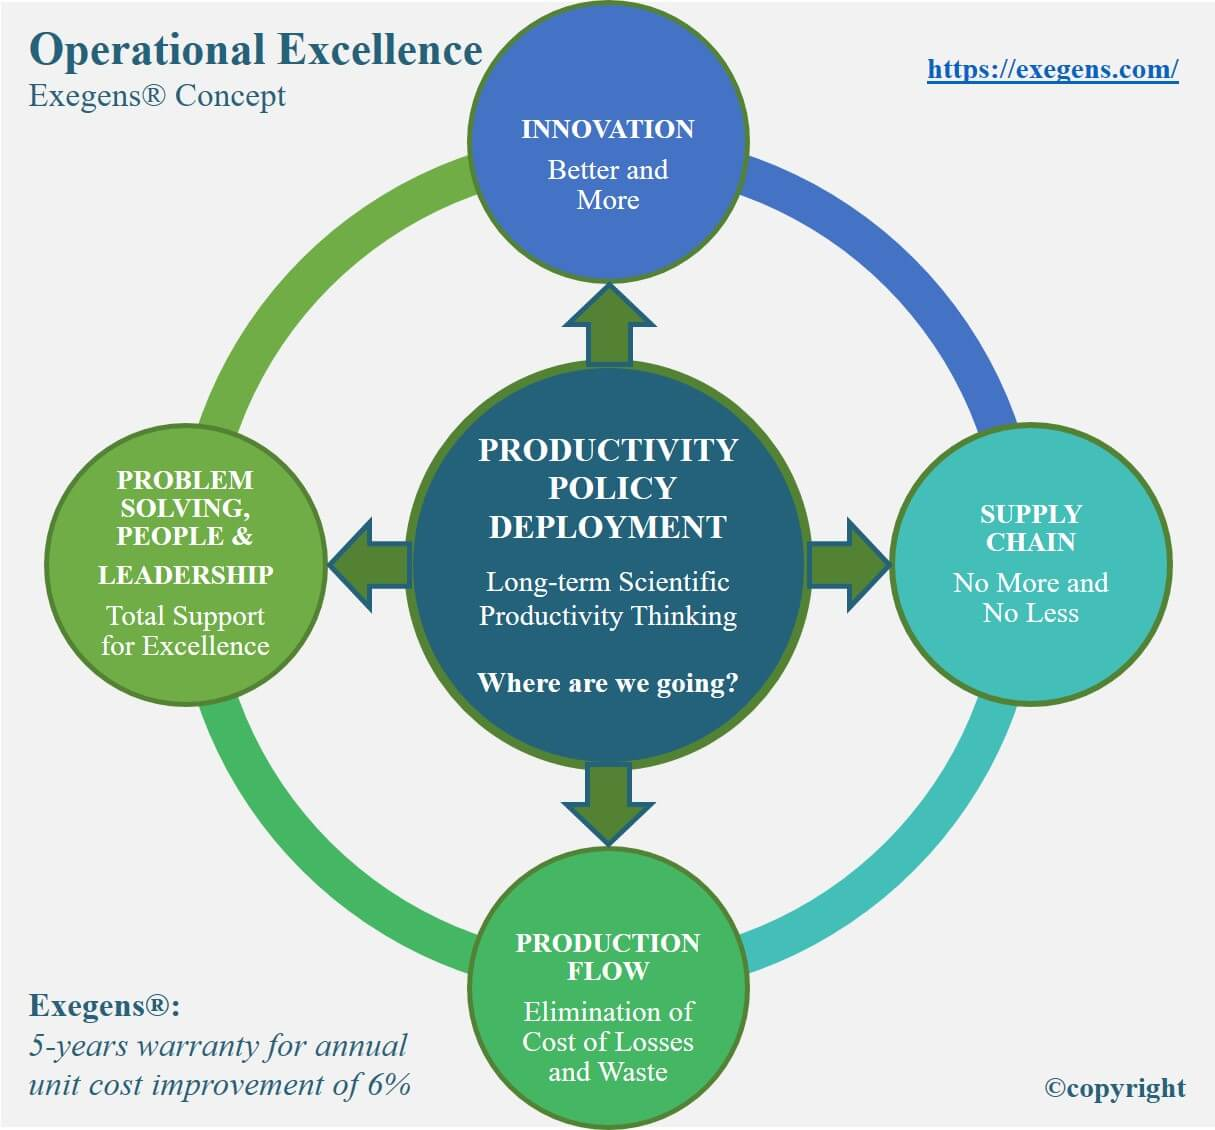 Operational Excellence by Exegens 2019